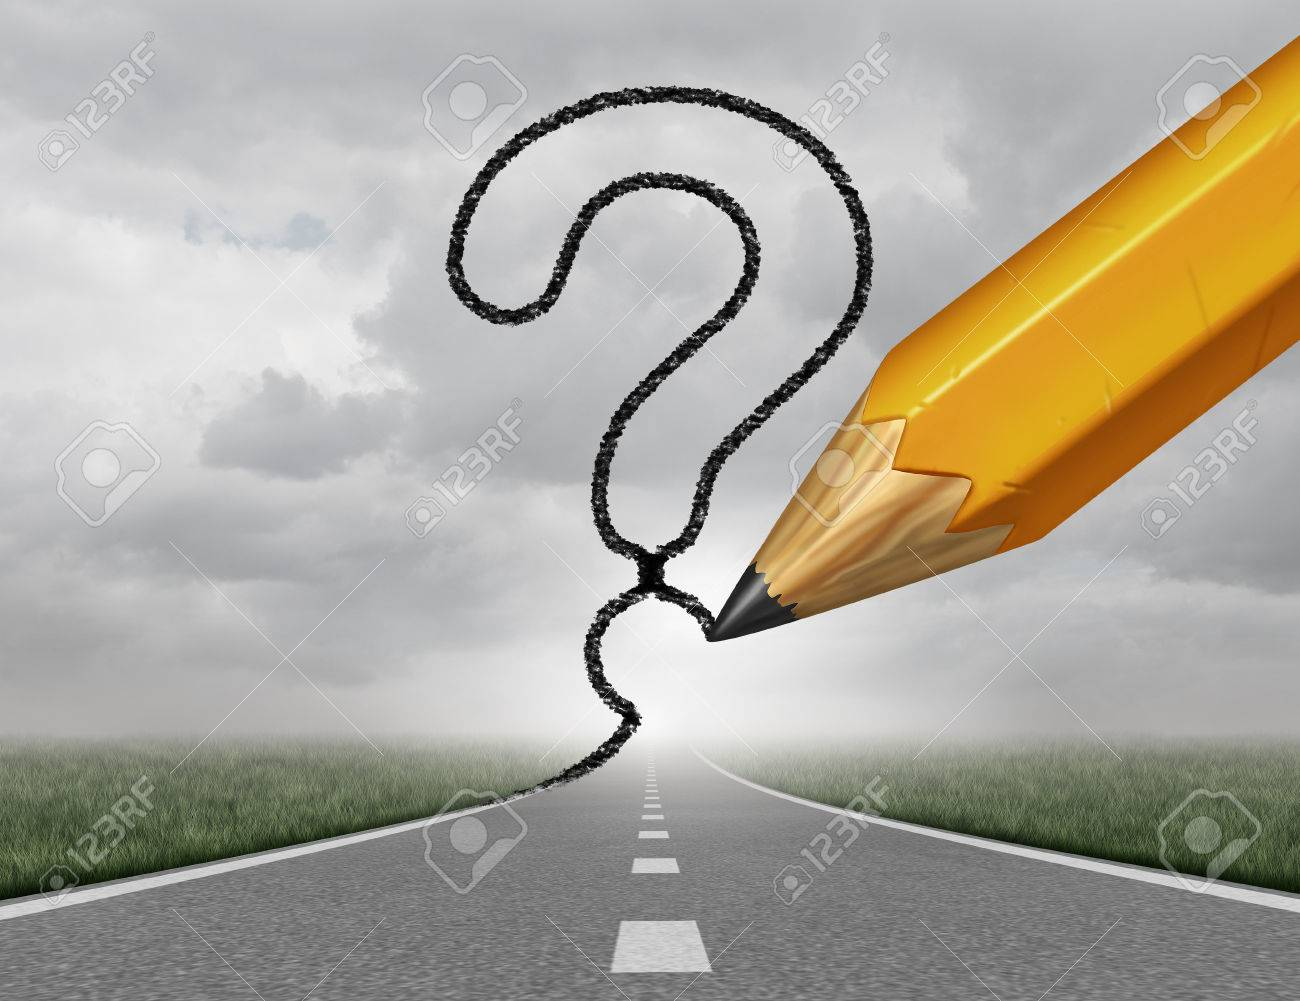 Business path questions road to change and corporate career pathway as a rising highway with a 3D illustration pencil drawing a question mark on a sky representing financial direction guidance and looking for answers. Standard-Bild - 55347946